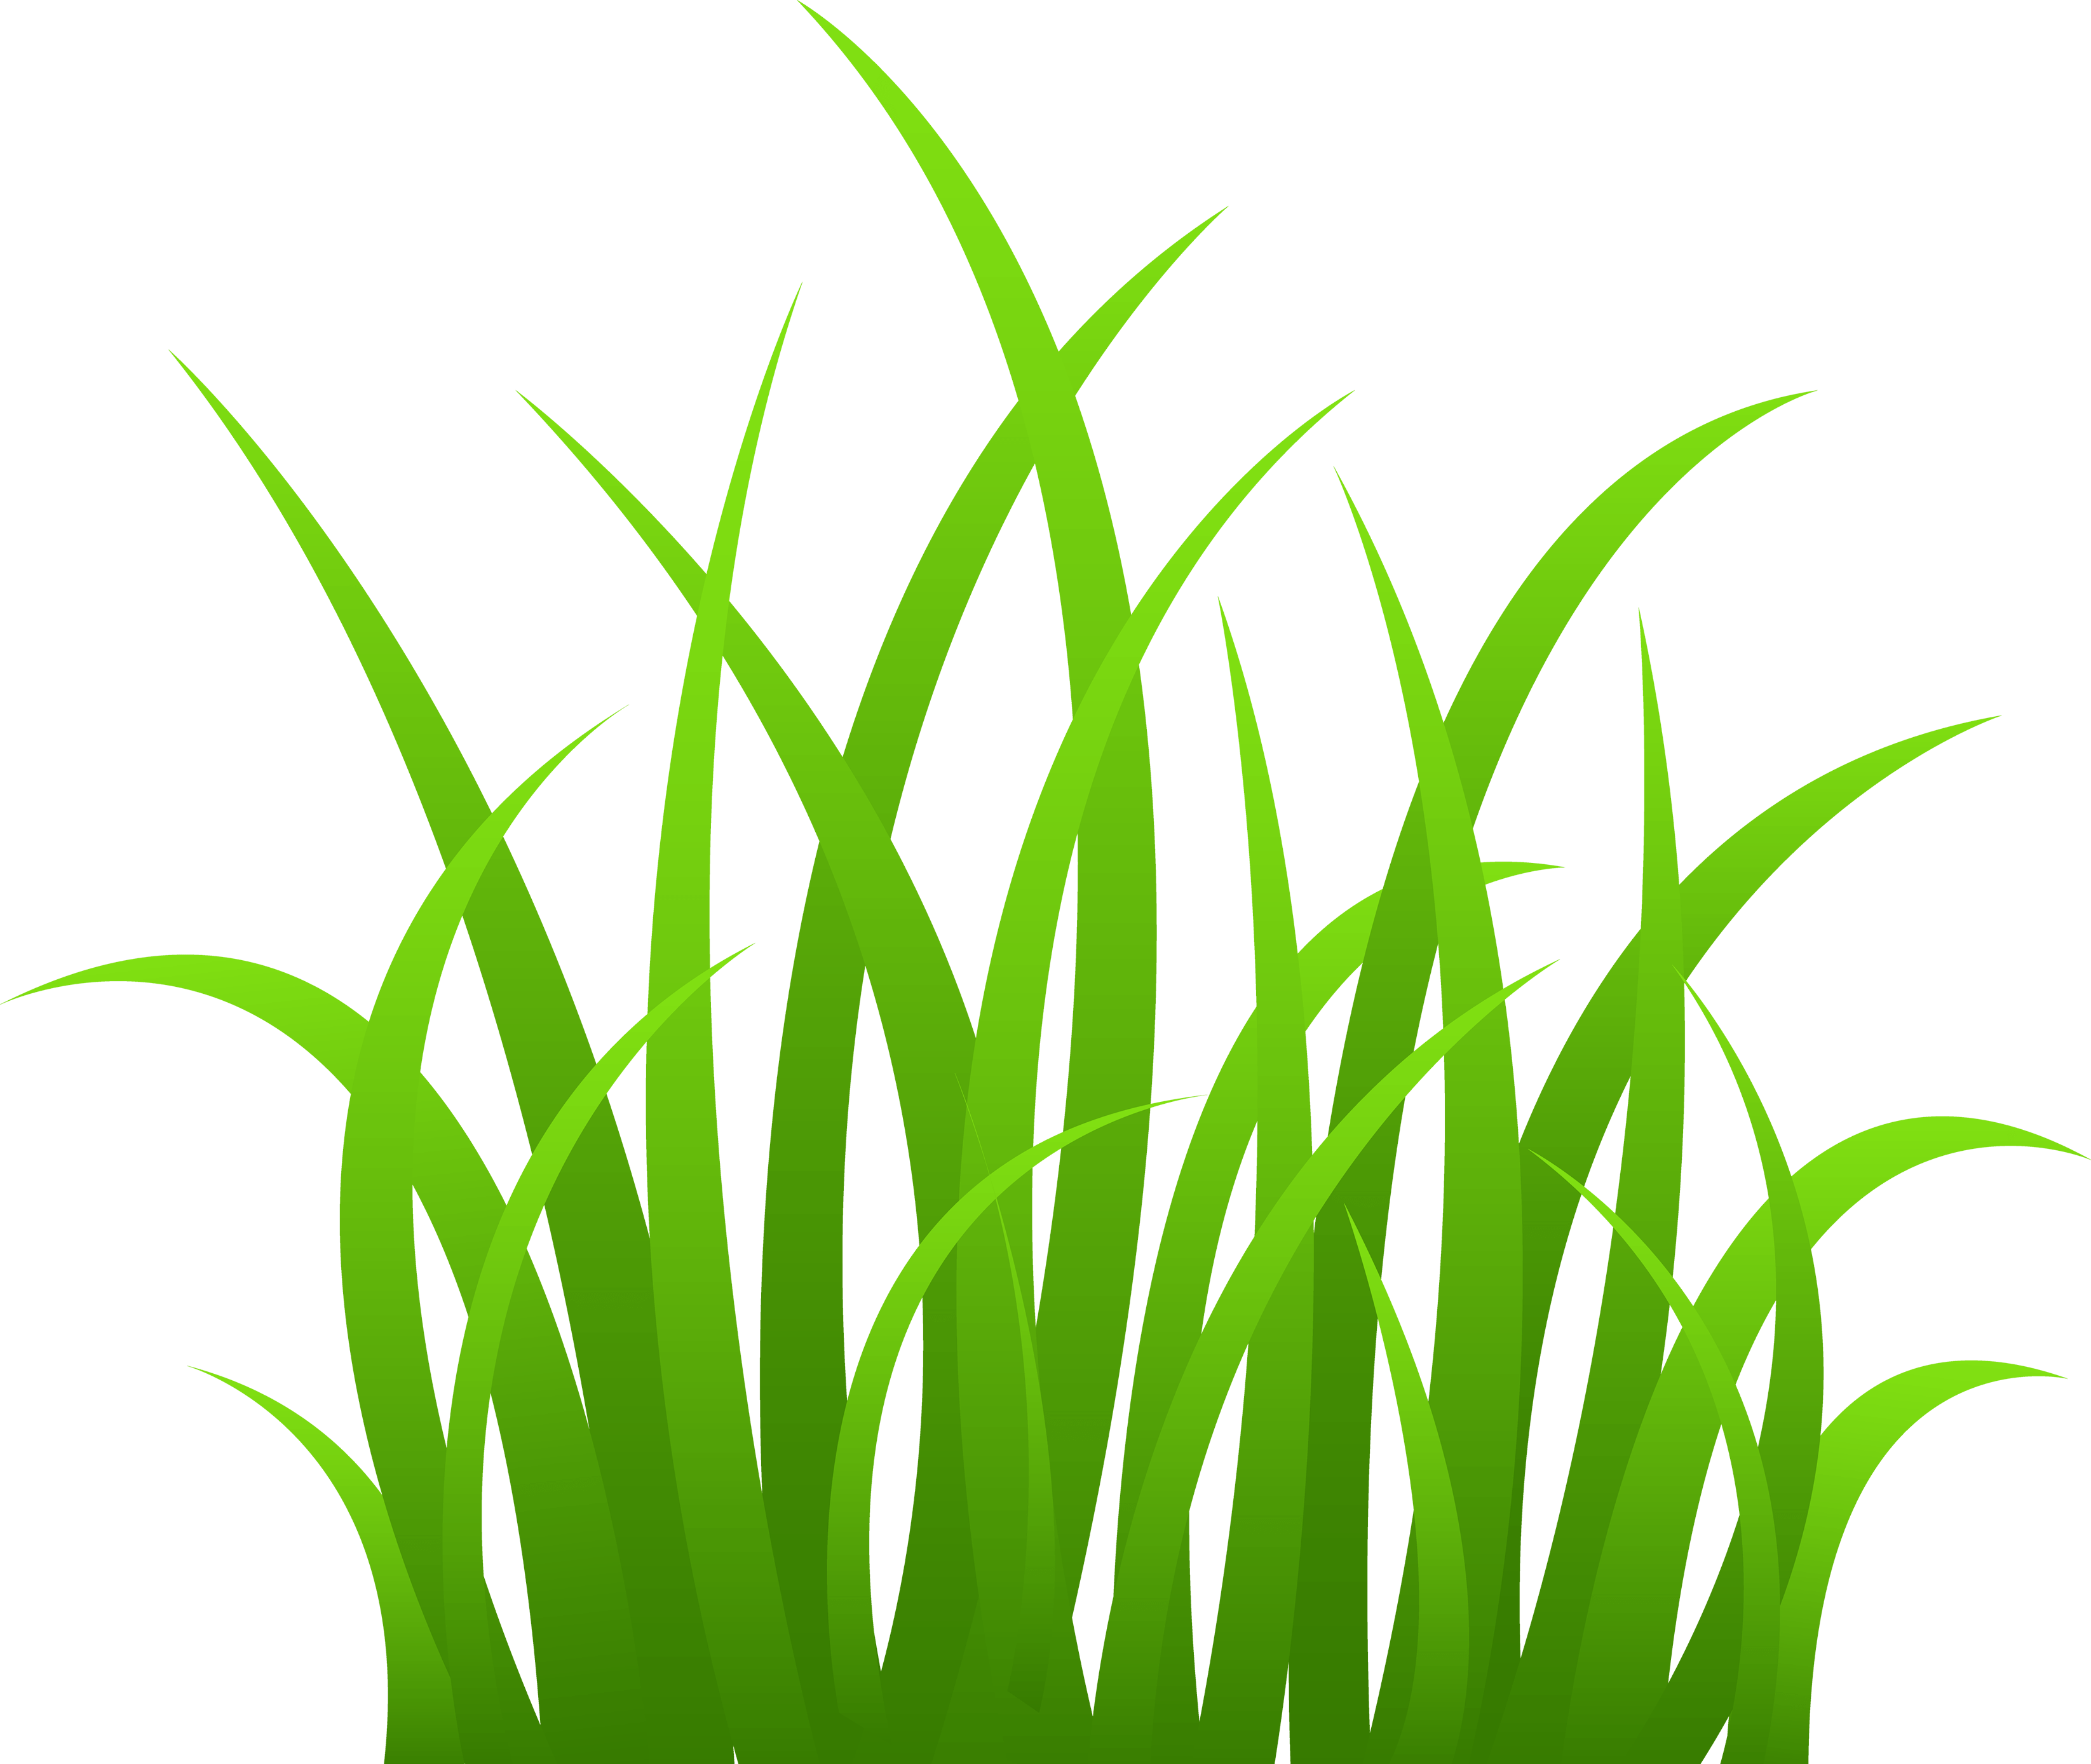 Grass Png Image Green Grass Png Picture Png Image - Grass, Transparent background PNG HD thumbnail